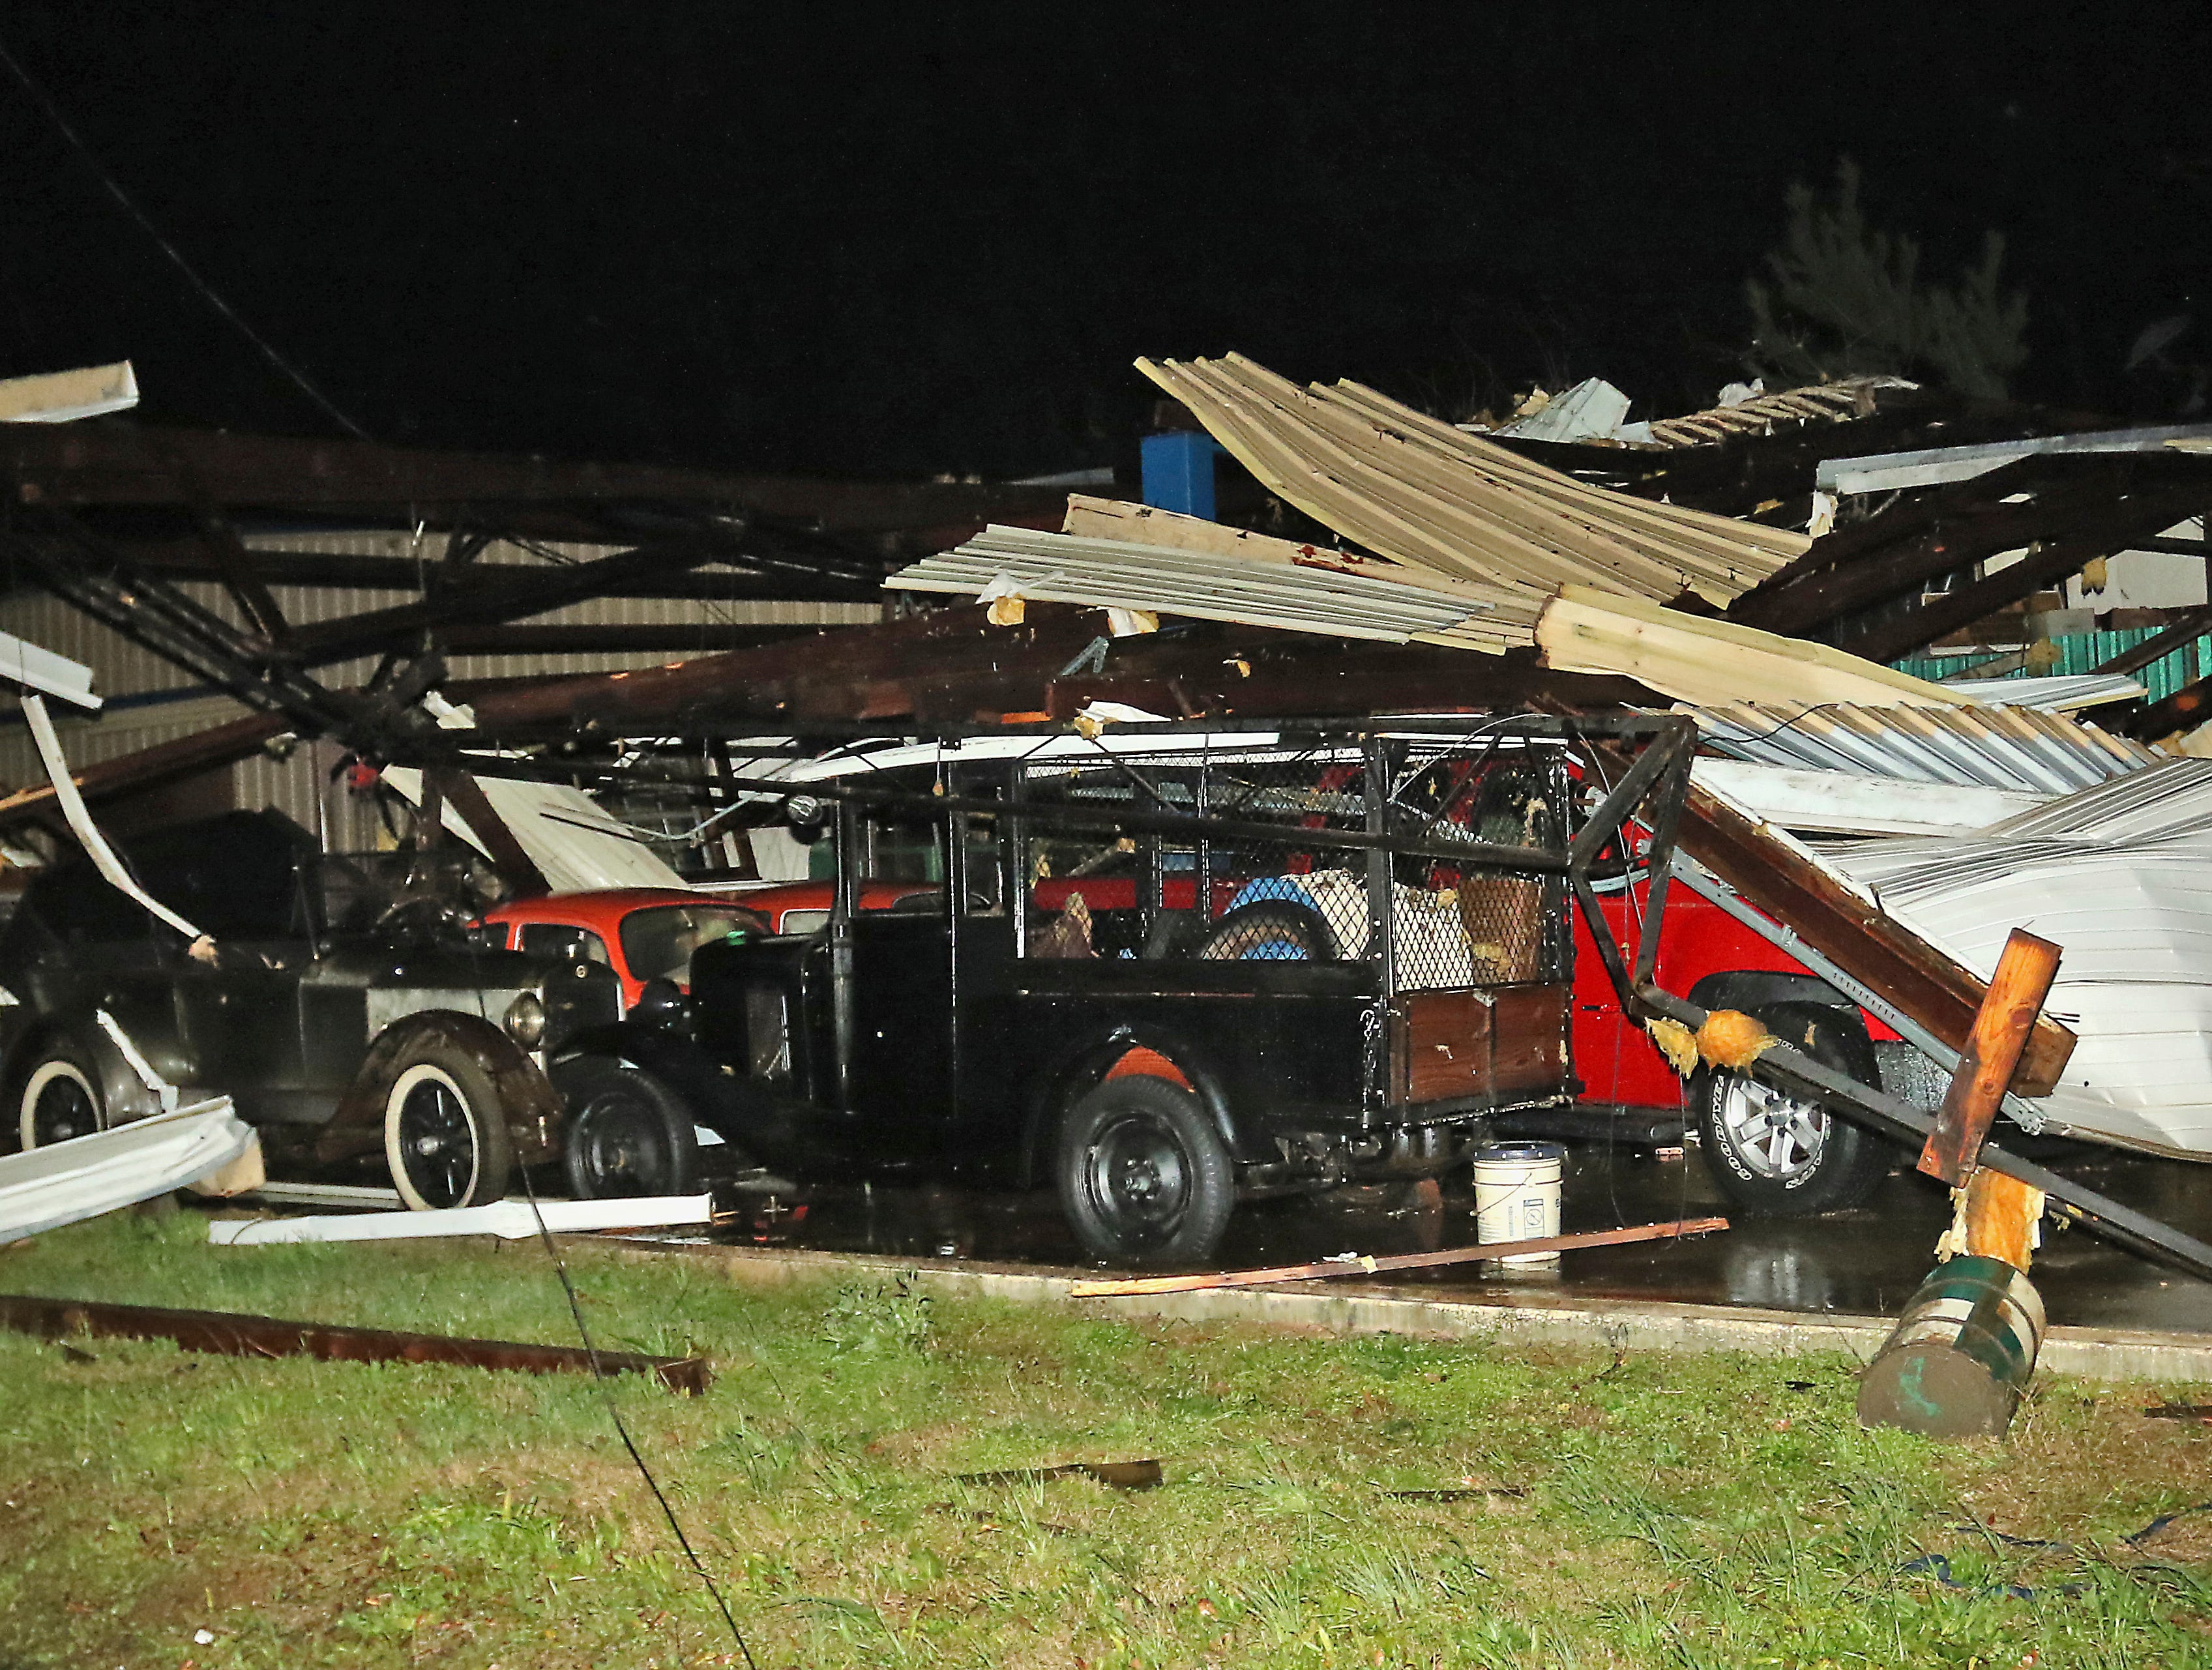 A 1923 Studebaker, left and a 1930 Chevrolet Paddy Wagon are exposed at Lawrence Motors along highway 50 in Columbus, Miss., after a tornado struck the area Saturday, Feb. 23, 2019. (AP Photo/Jim Lytle)